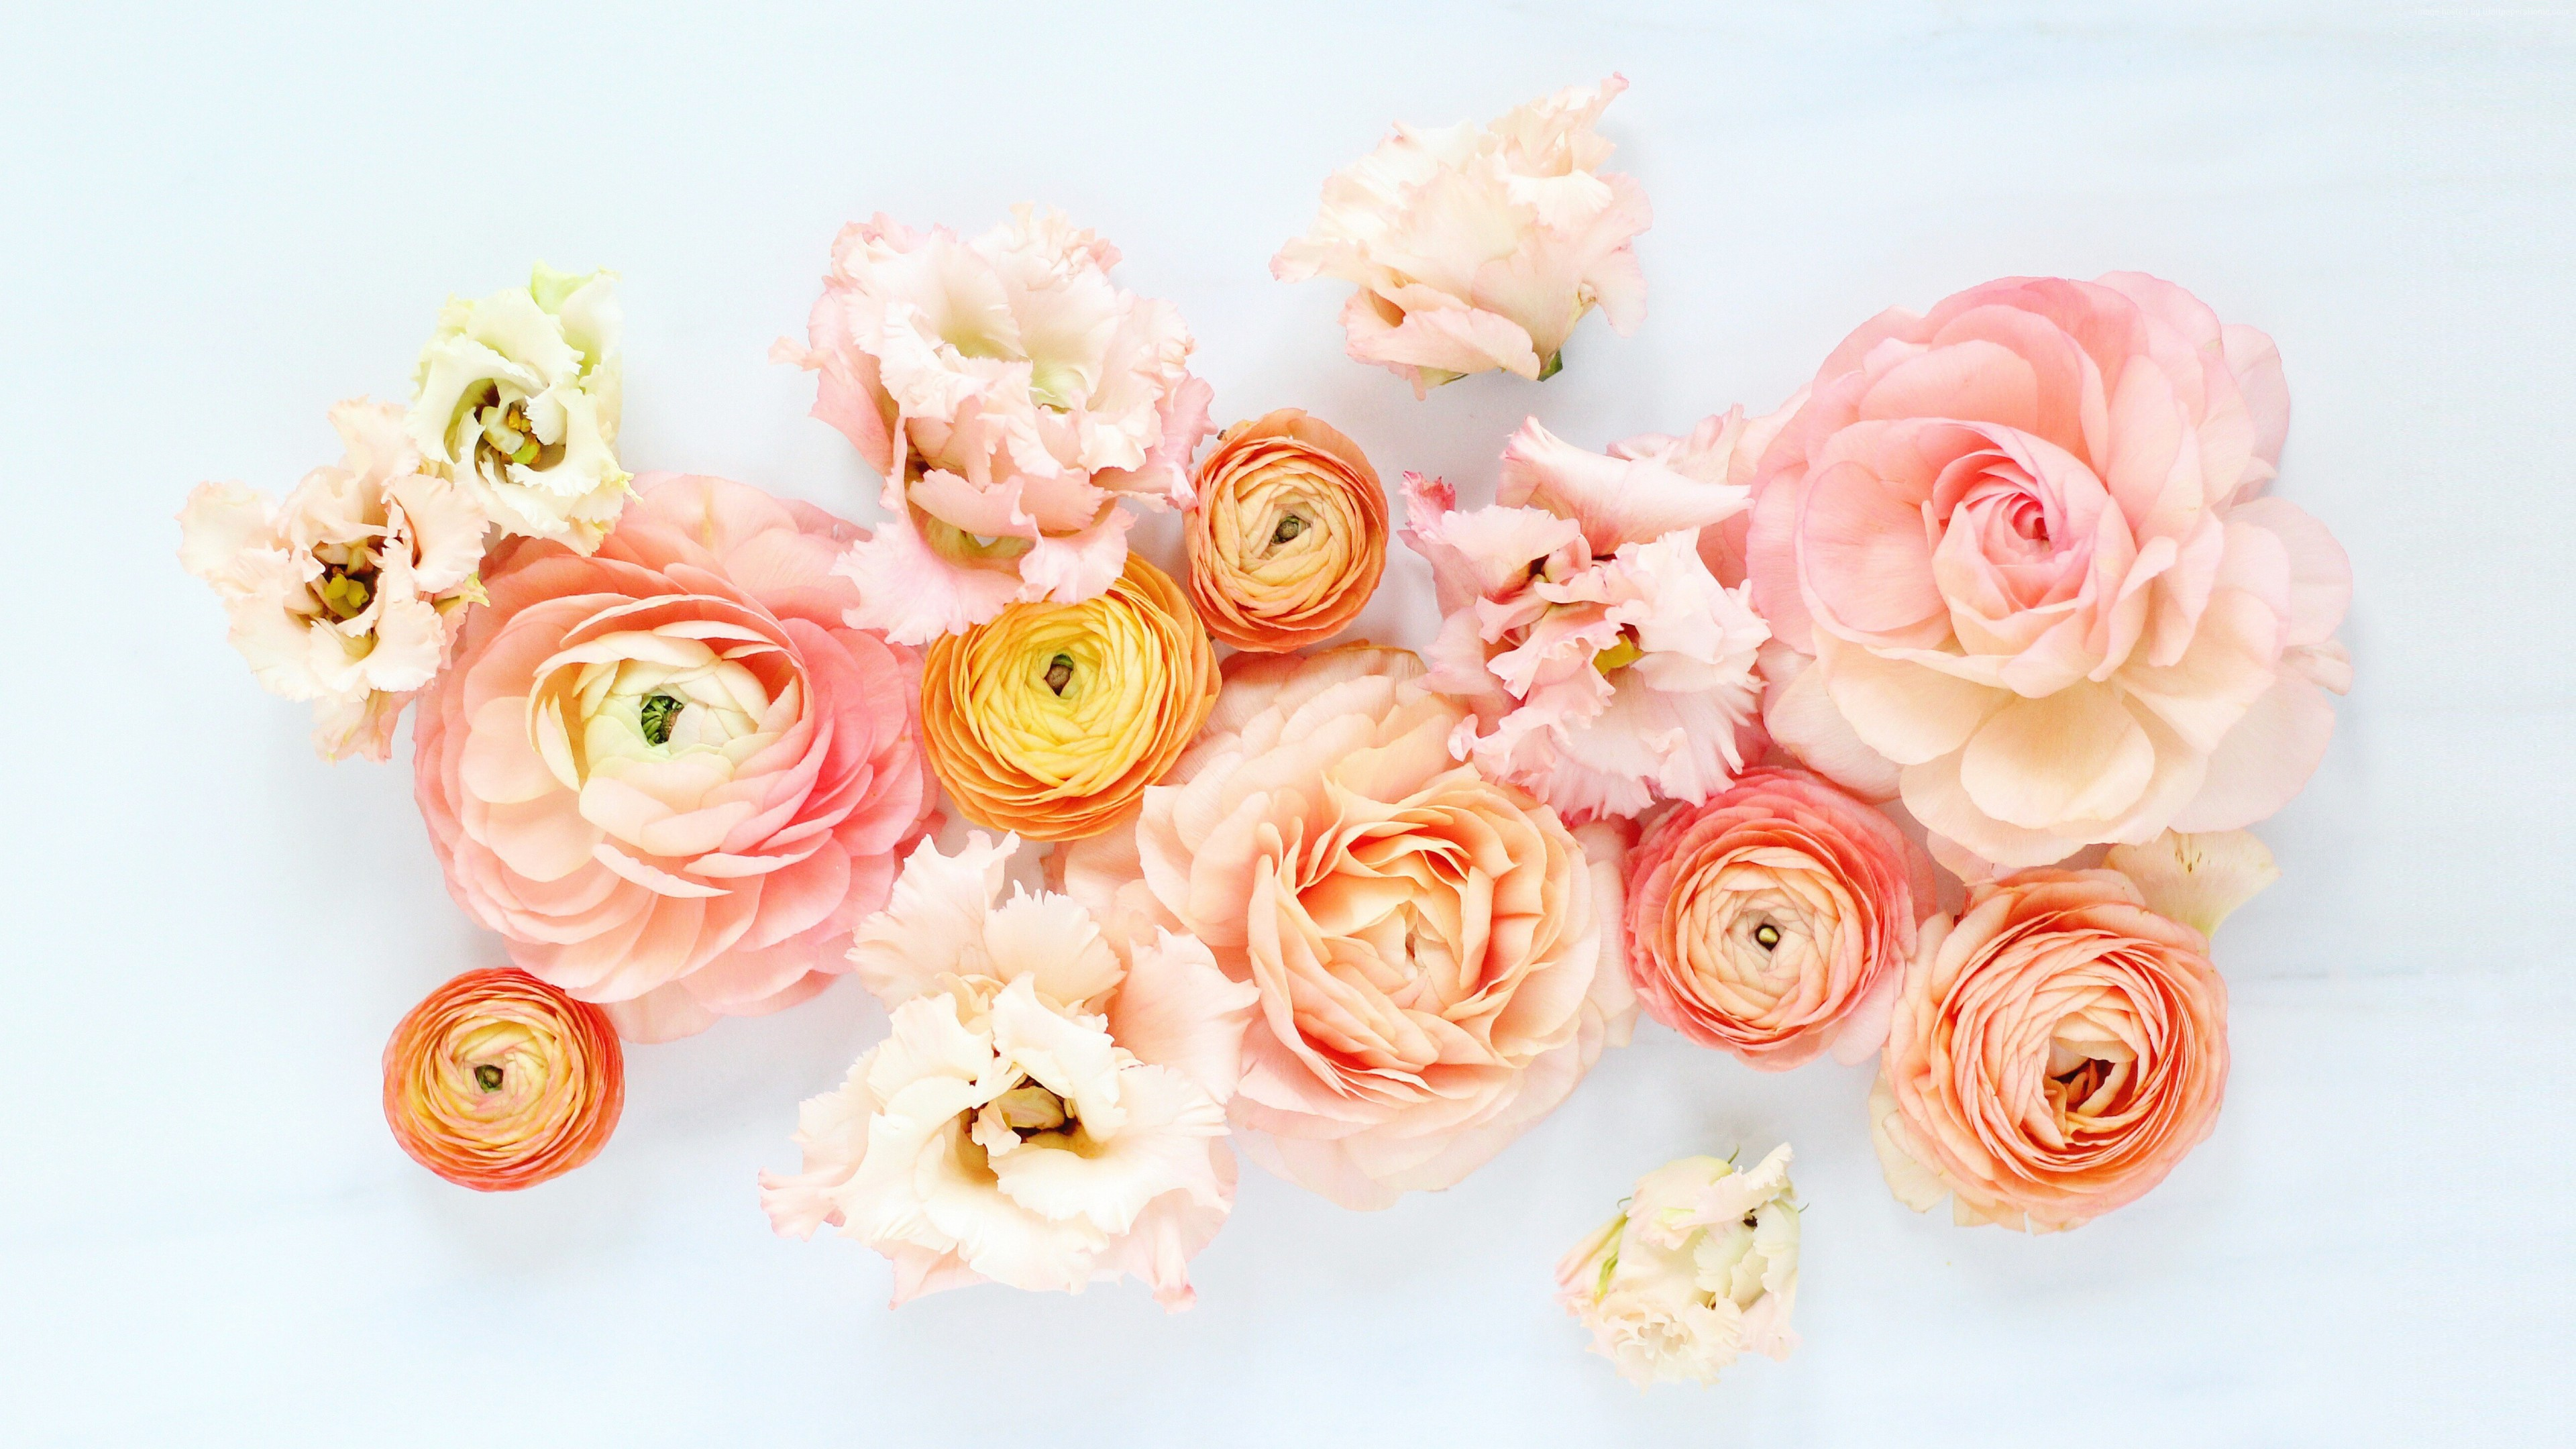 Stock Images flowers, 5k, Stock Images